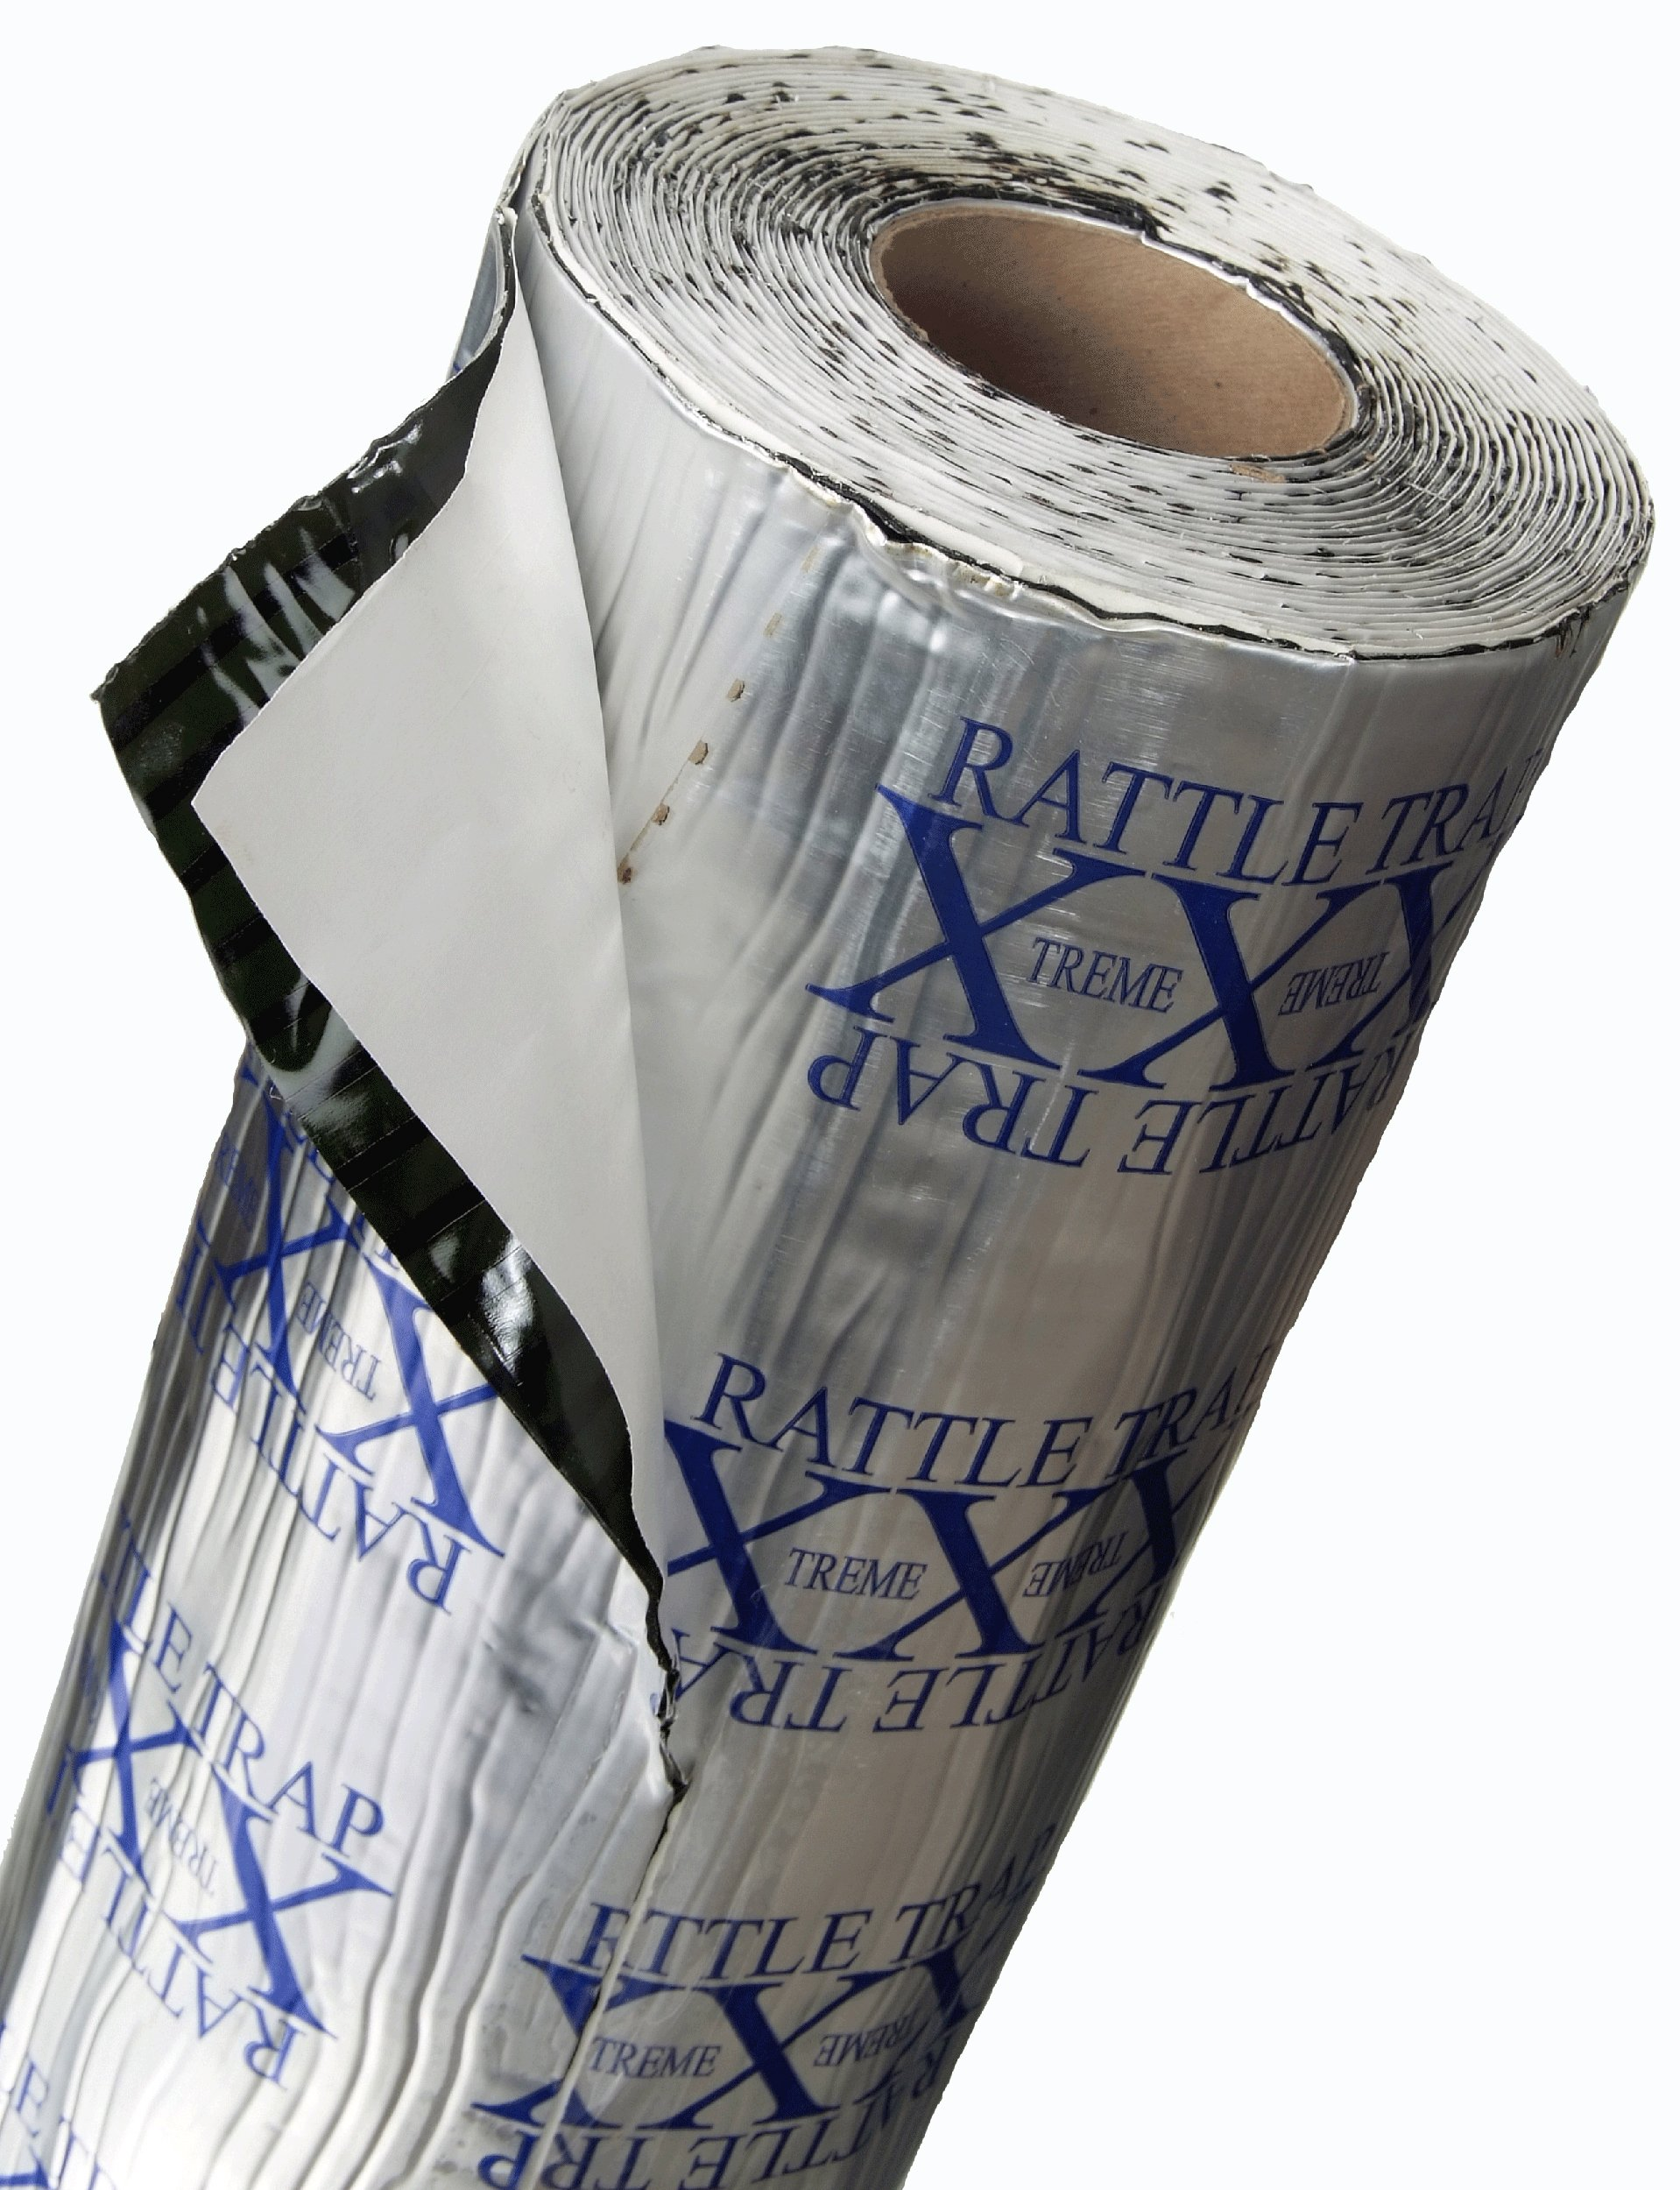 FatMat Self-Adhesive Rattletrap Sound Deadener Bulk Pack with Install Kit - 50 Sq Ft x 80 mil Thick by FatMat